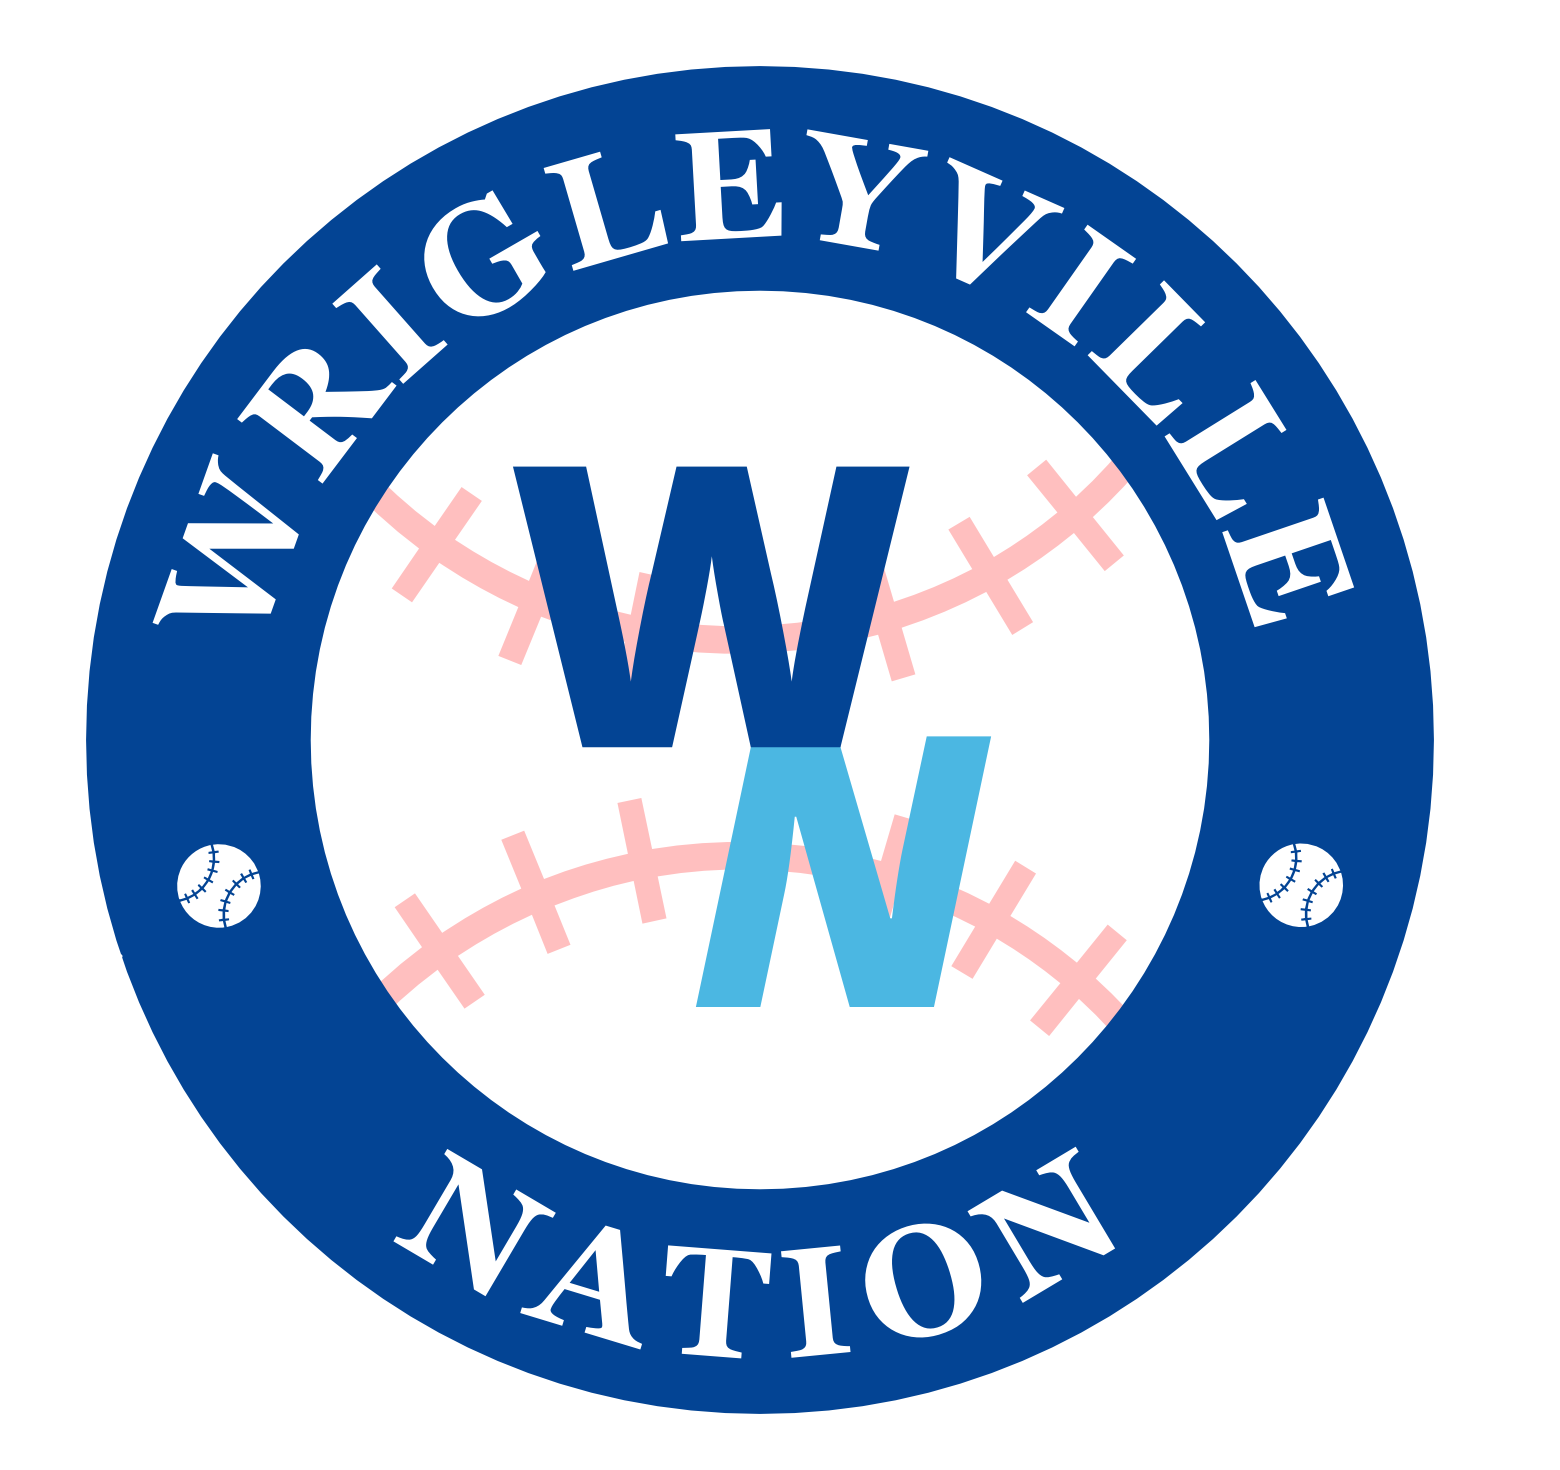 Wrigleyville Nation Ep 208 - Guest: Matt Clapp, Cubs Road Woes, Maddon Future, and Roster Moves show art